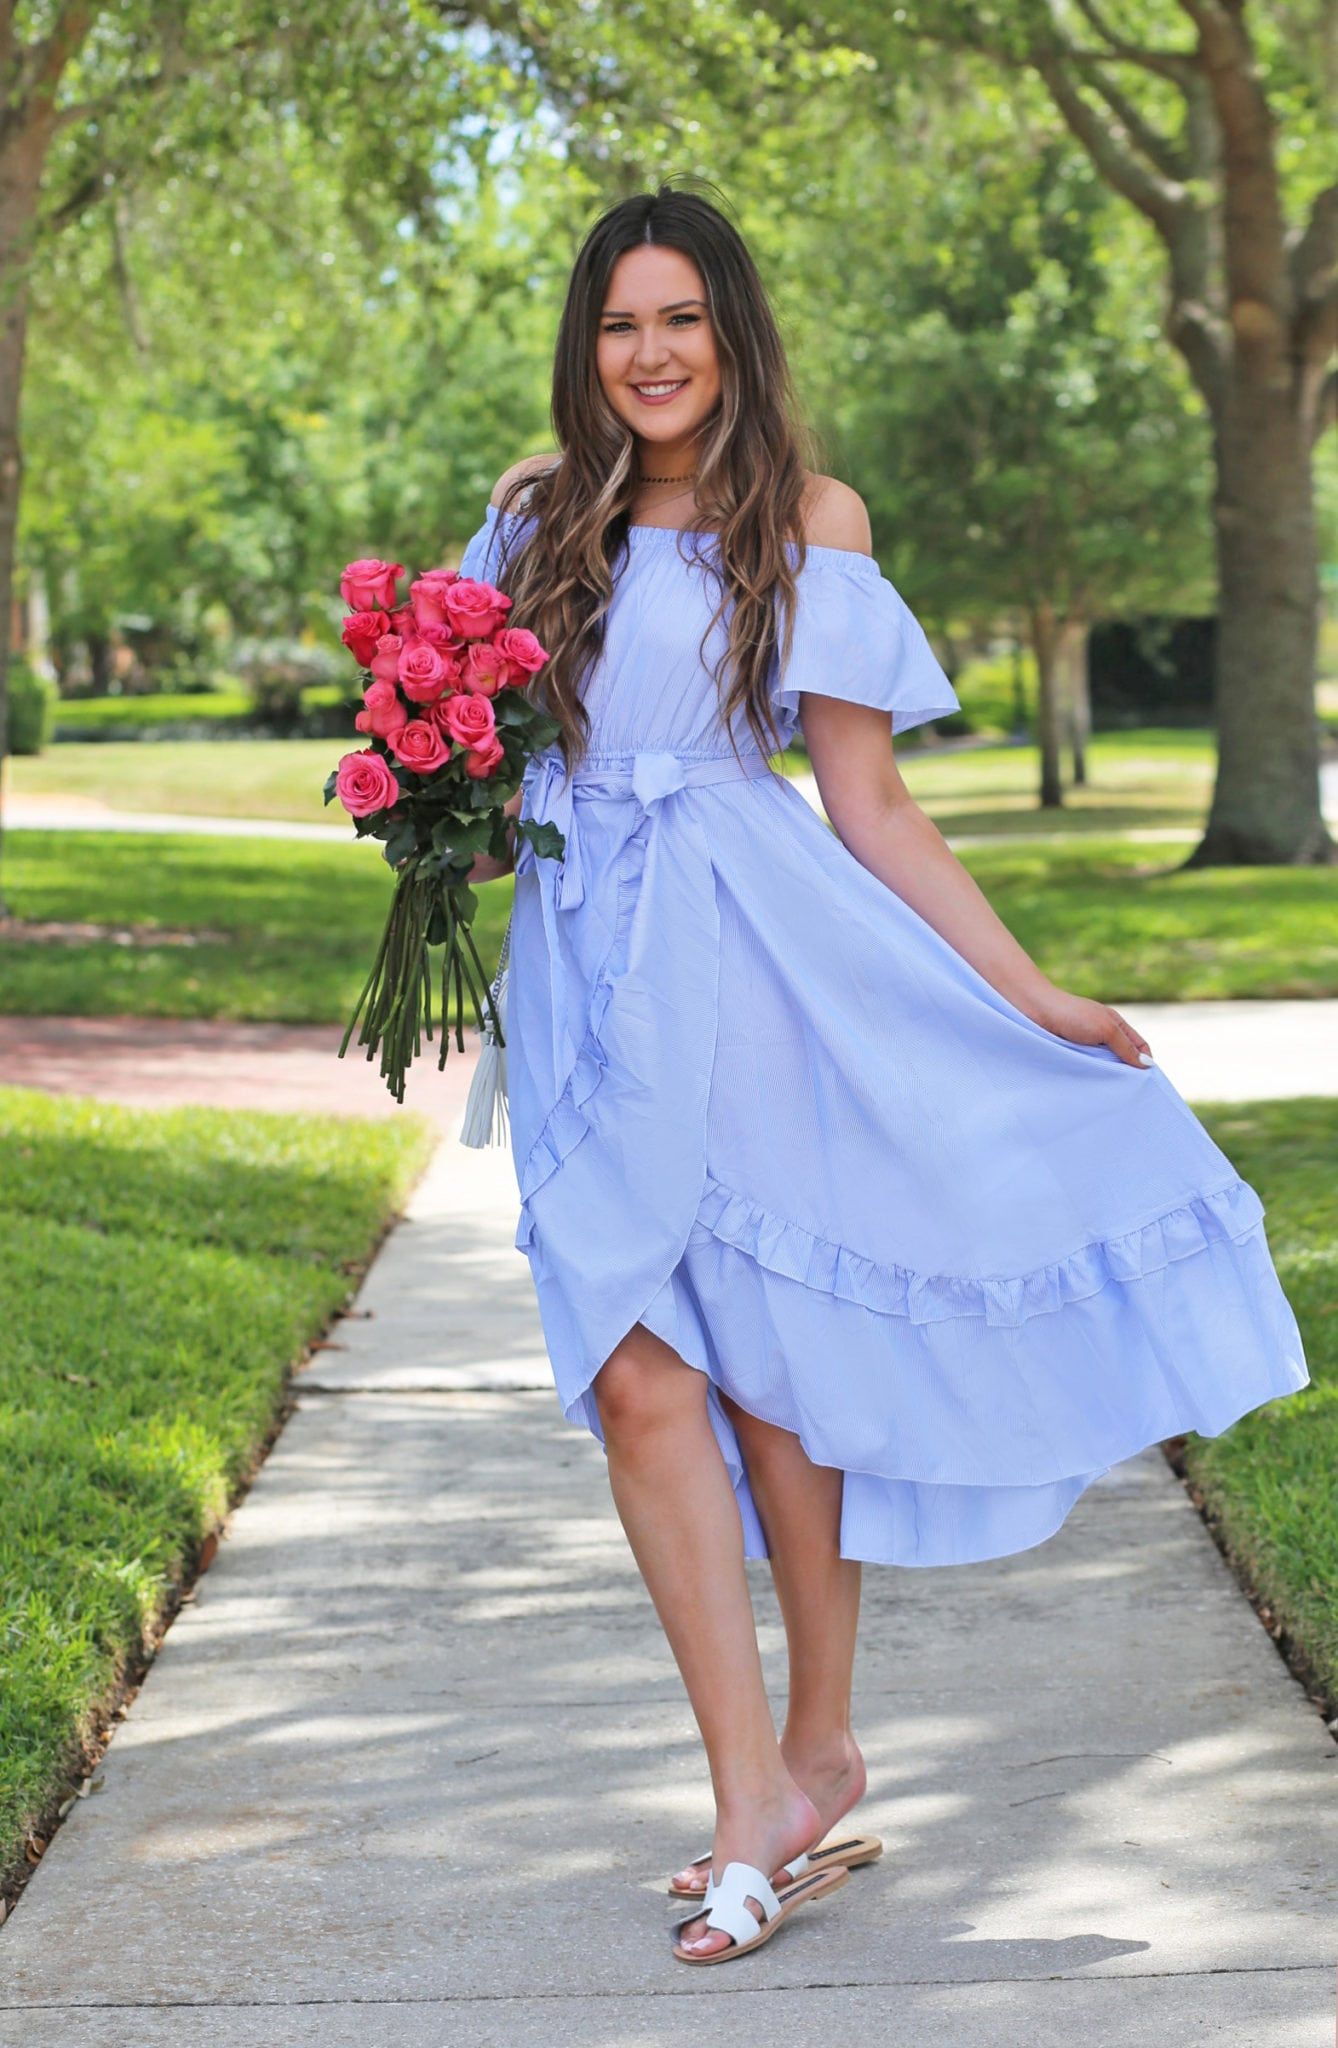 Mash Elle beauty blogger | sweet spring dress | blue dress | pink roses | park | spring time | spring style